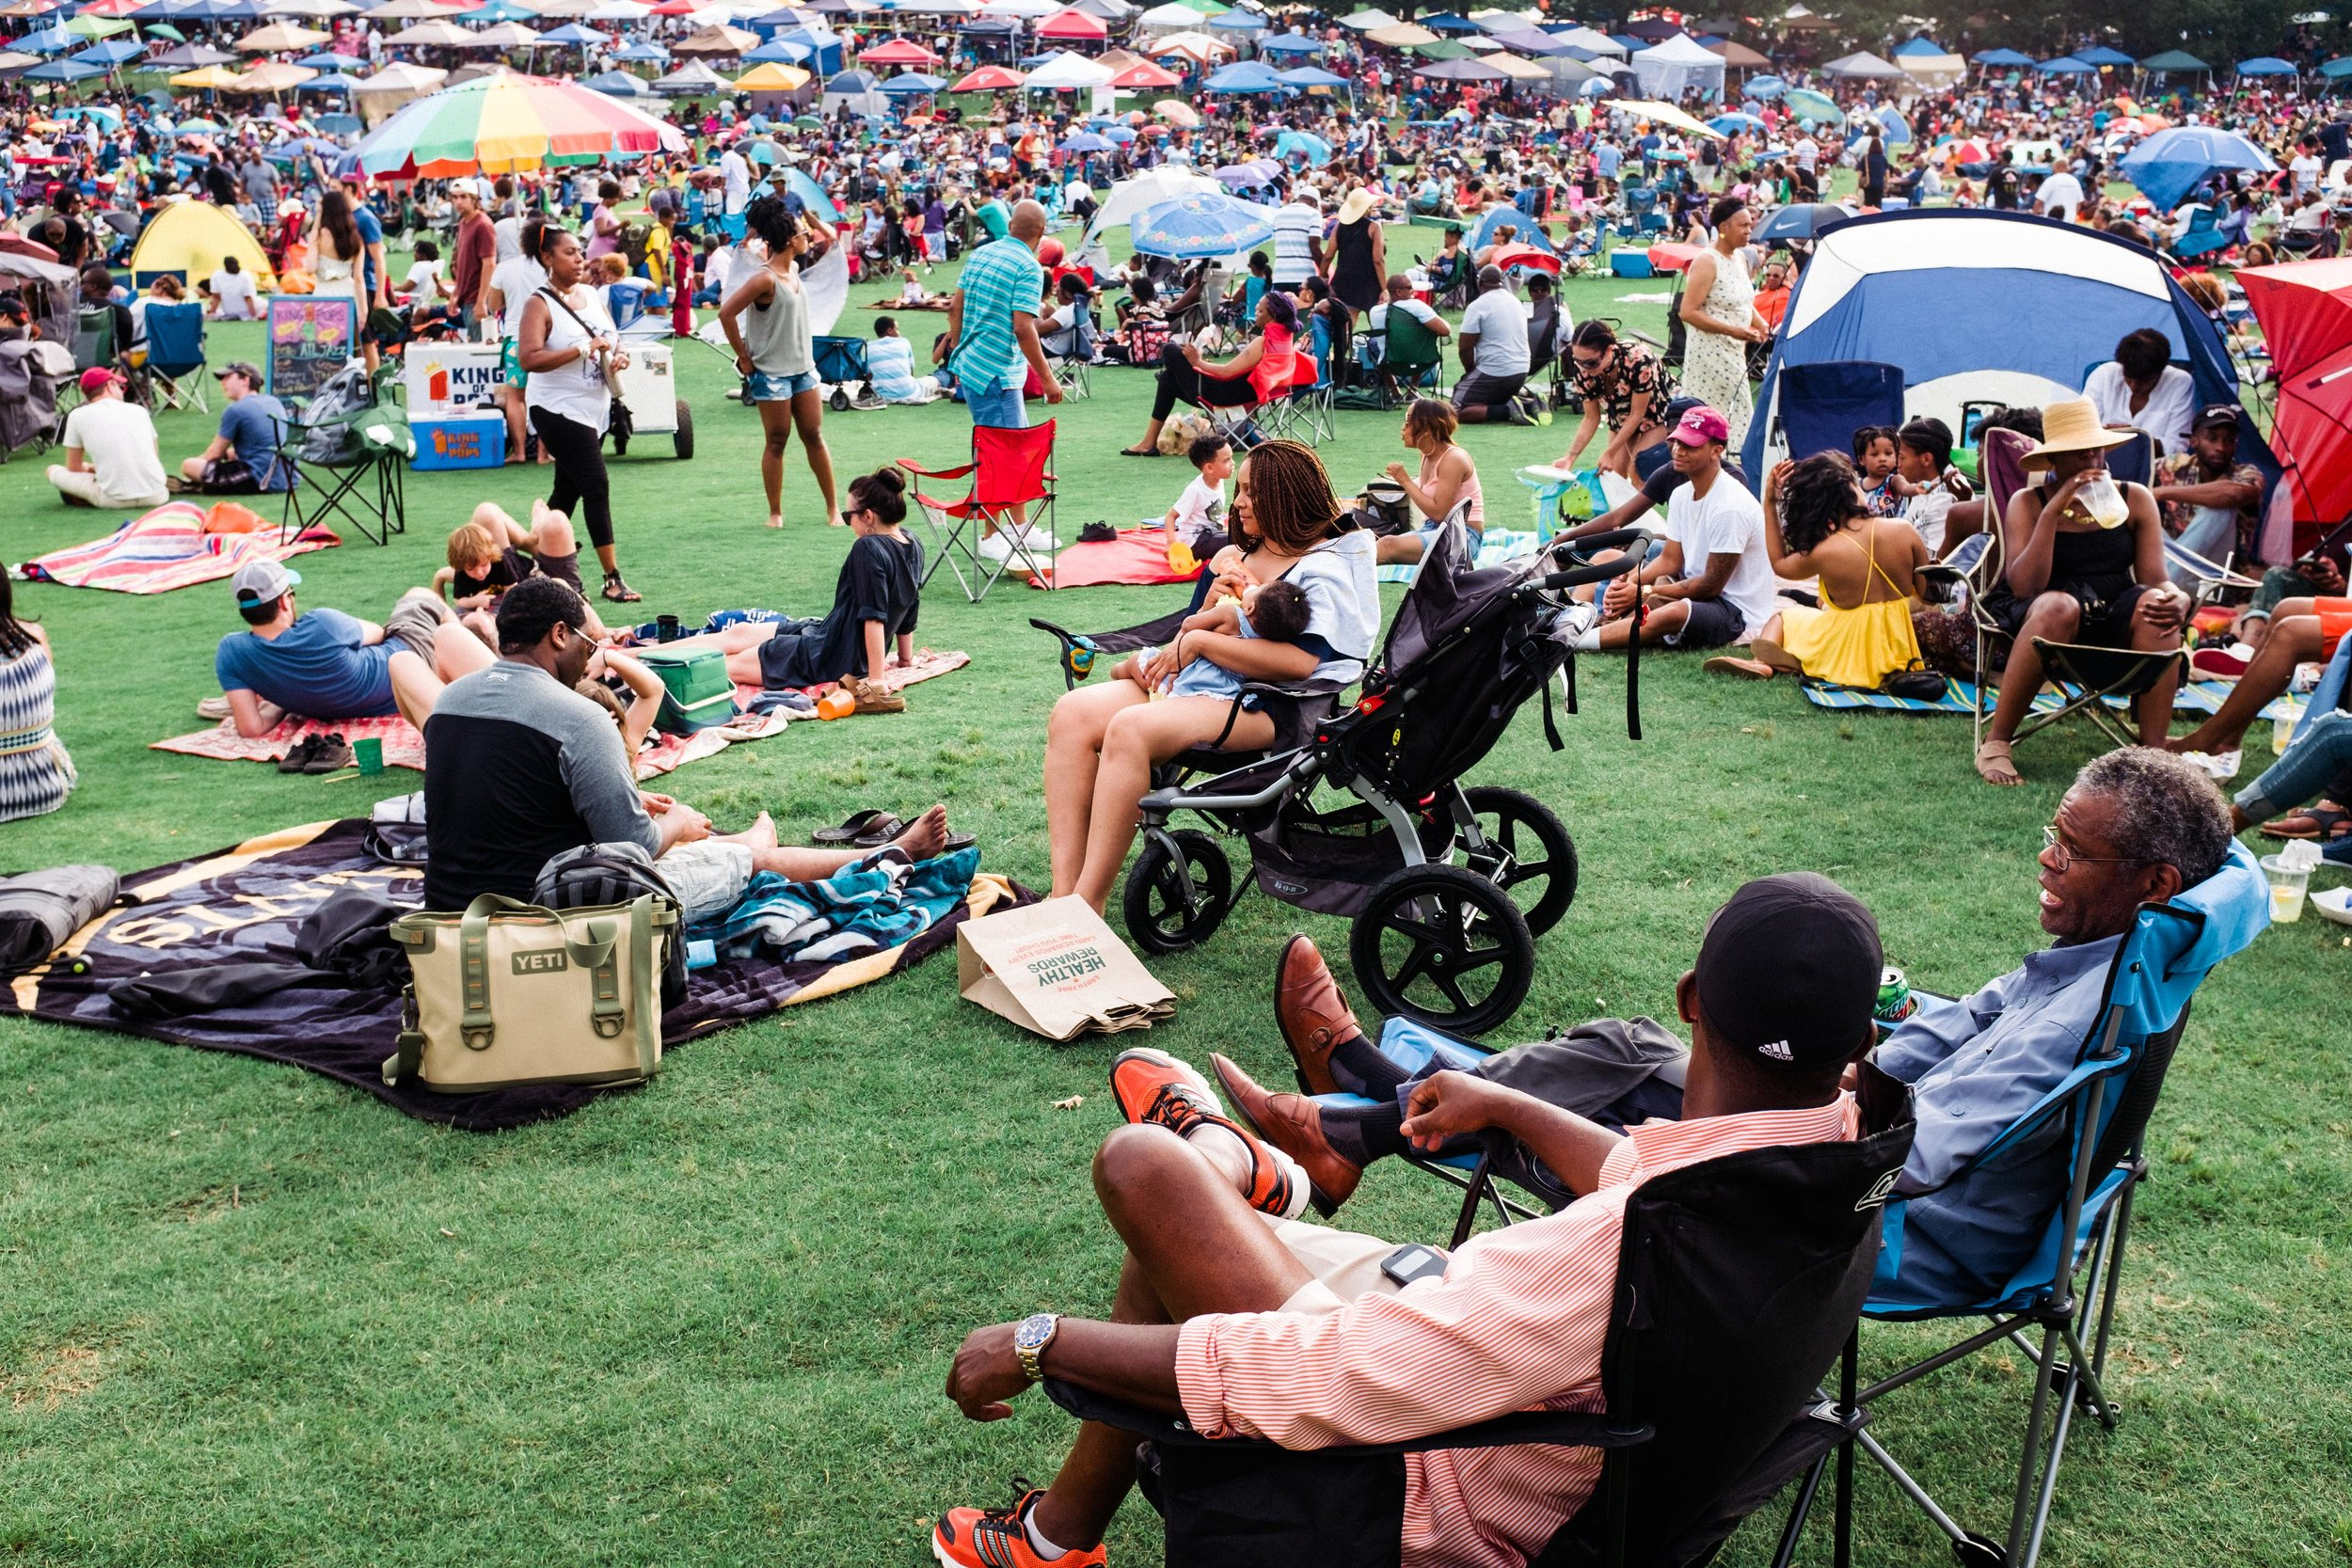 atlanta-jazz-festival-large-crowd